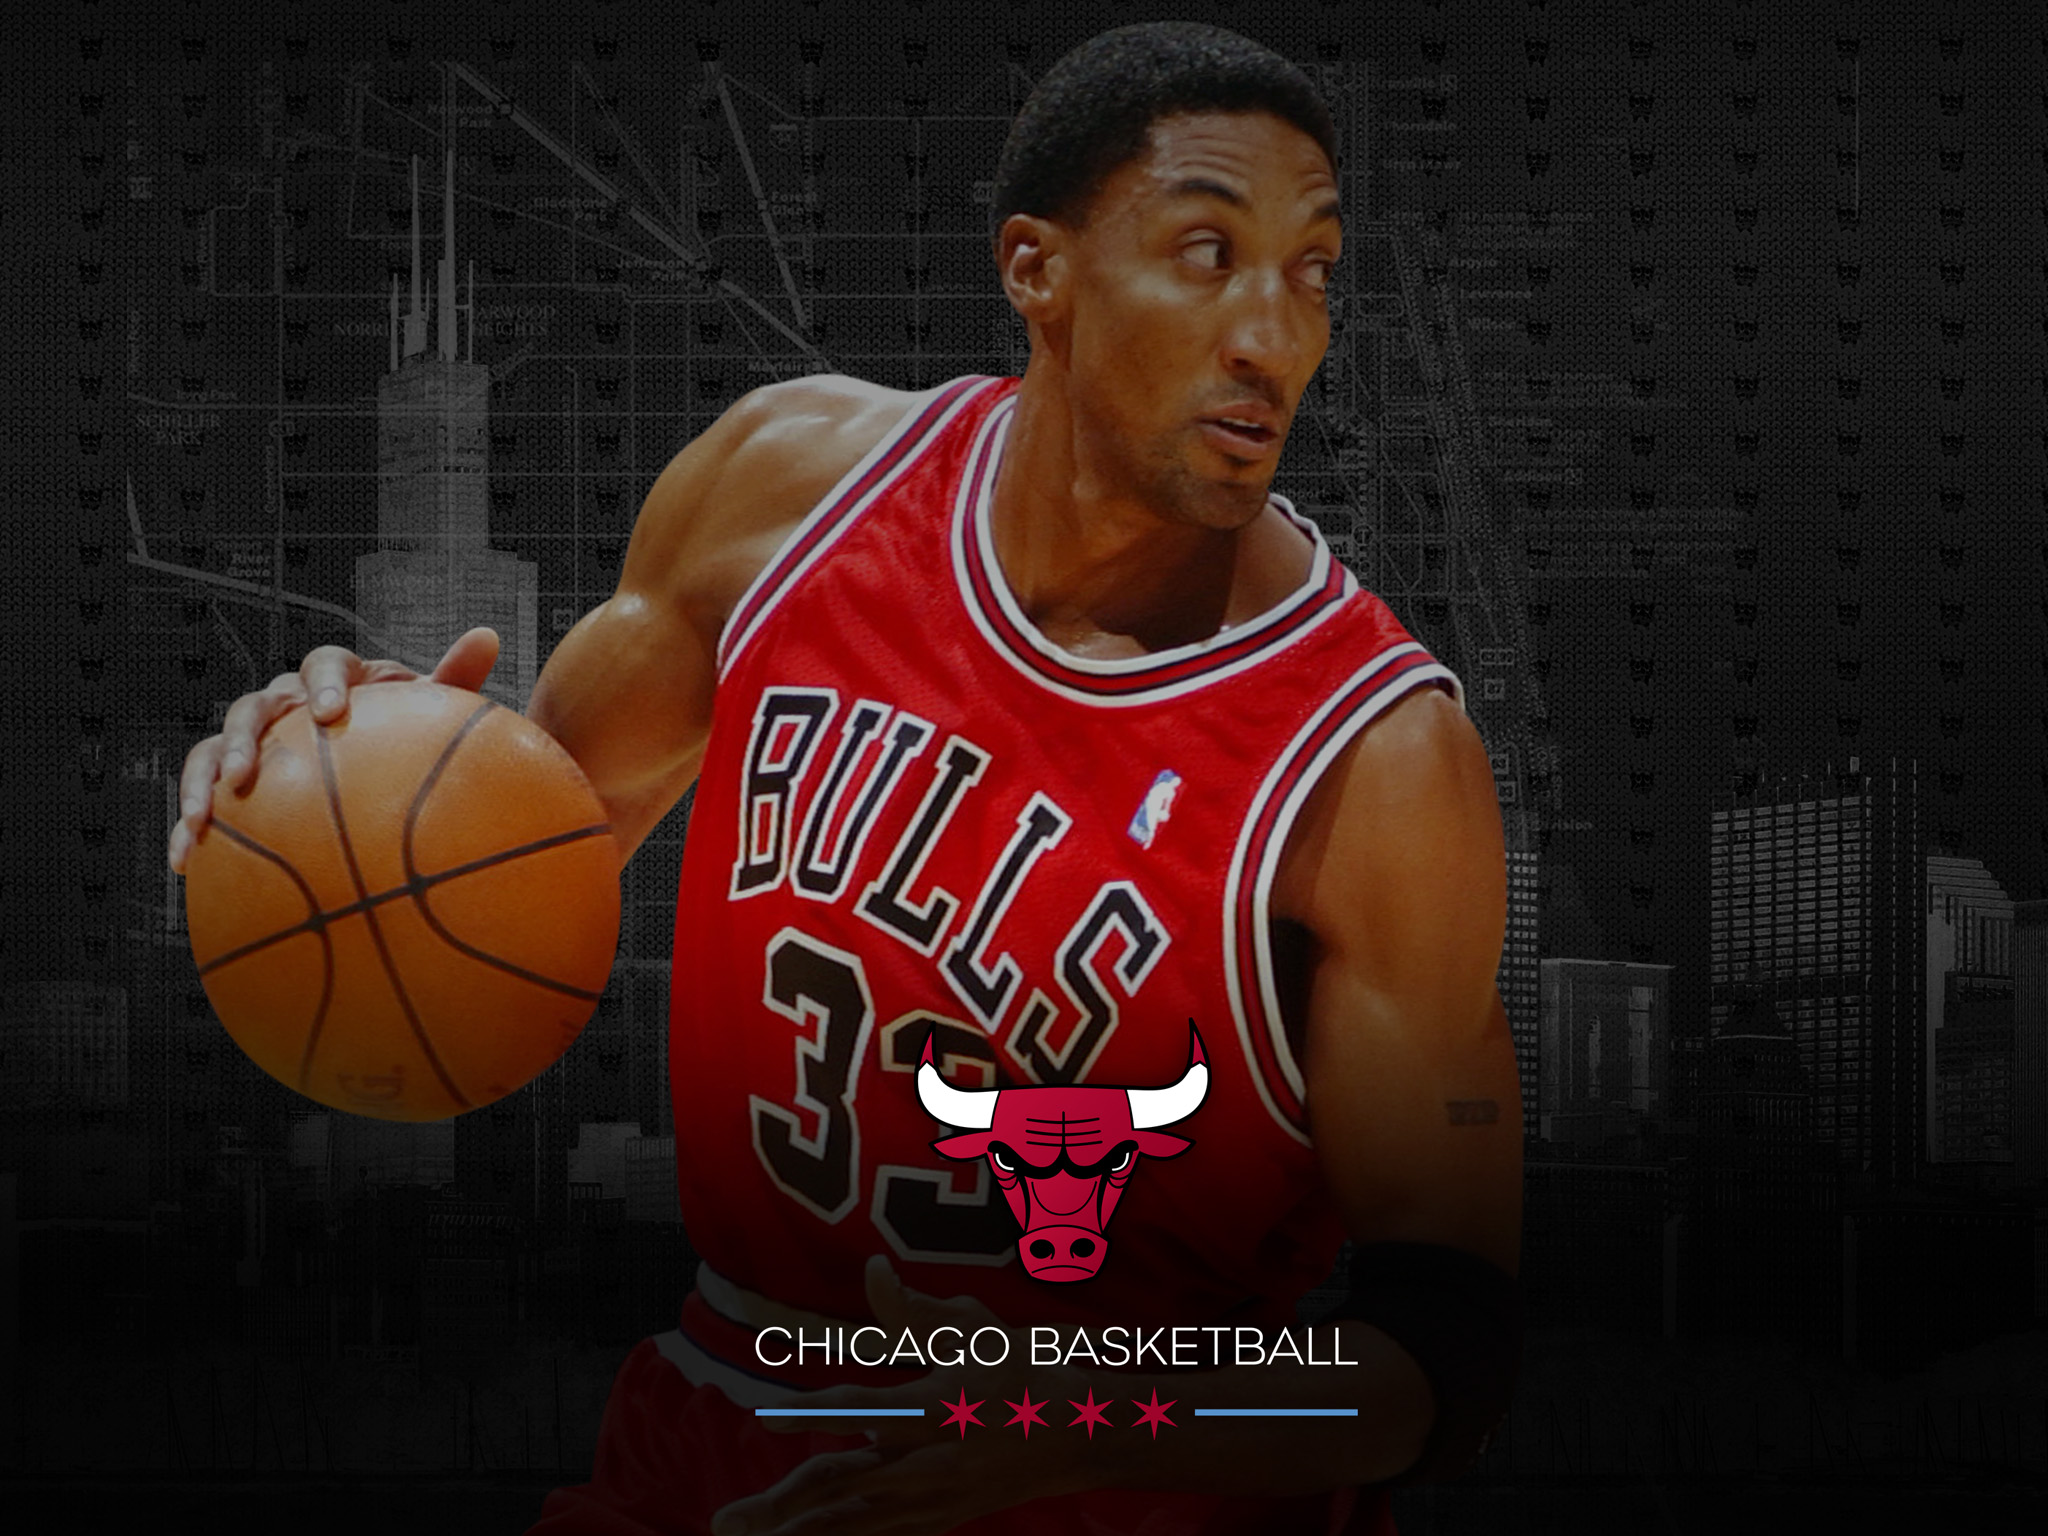 scottie pippen hd wallpapers for desktop download